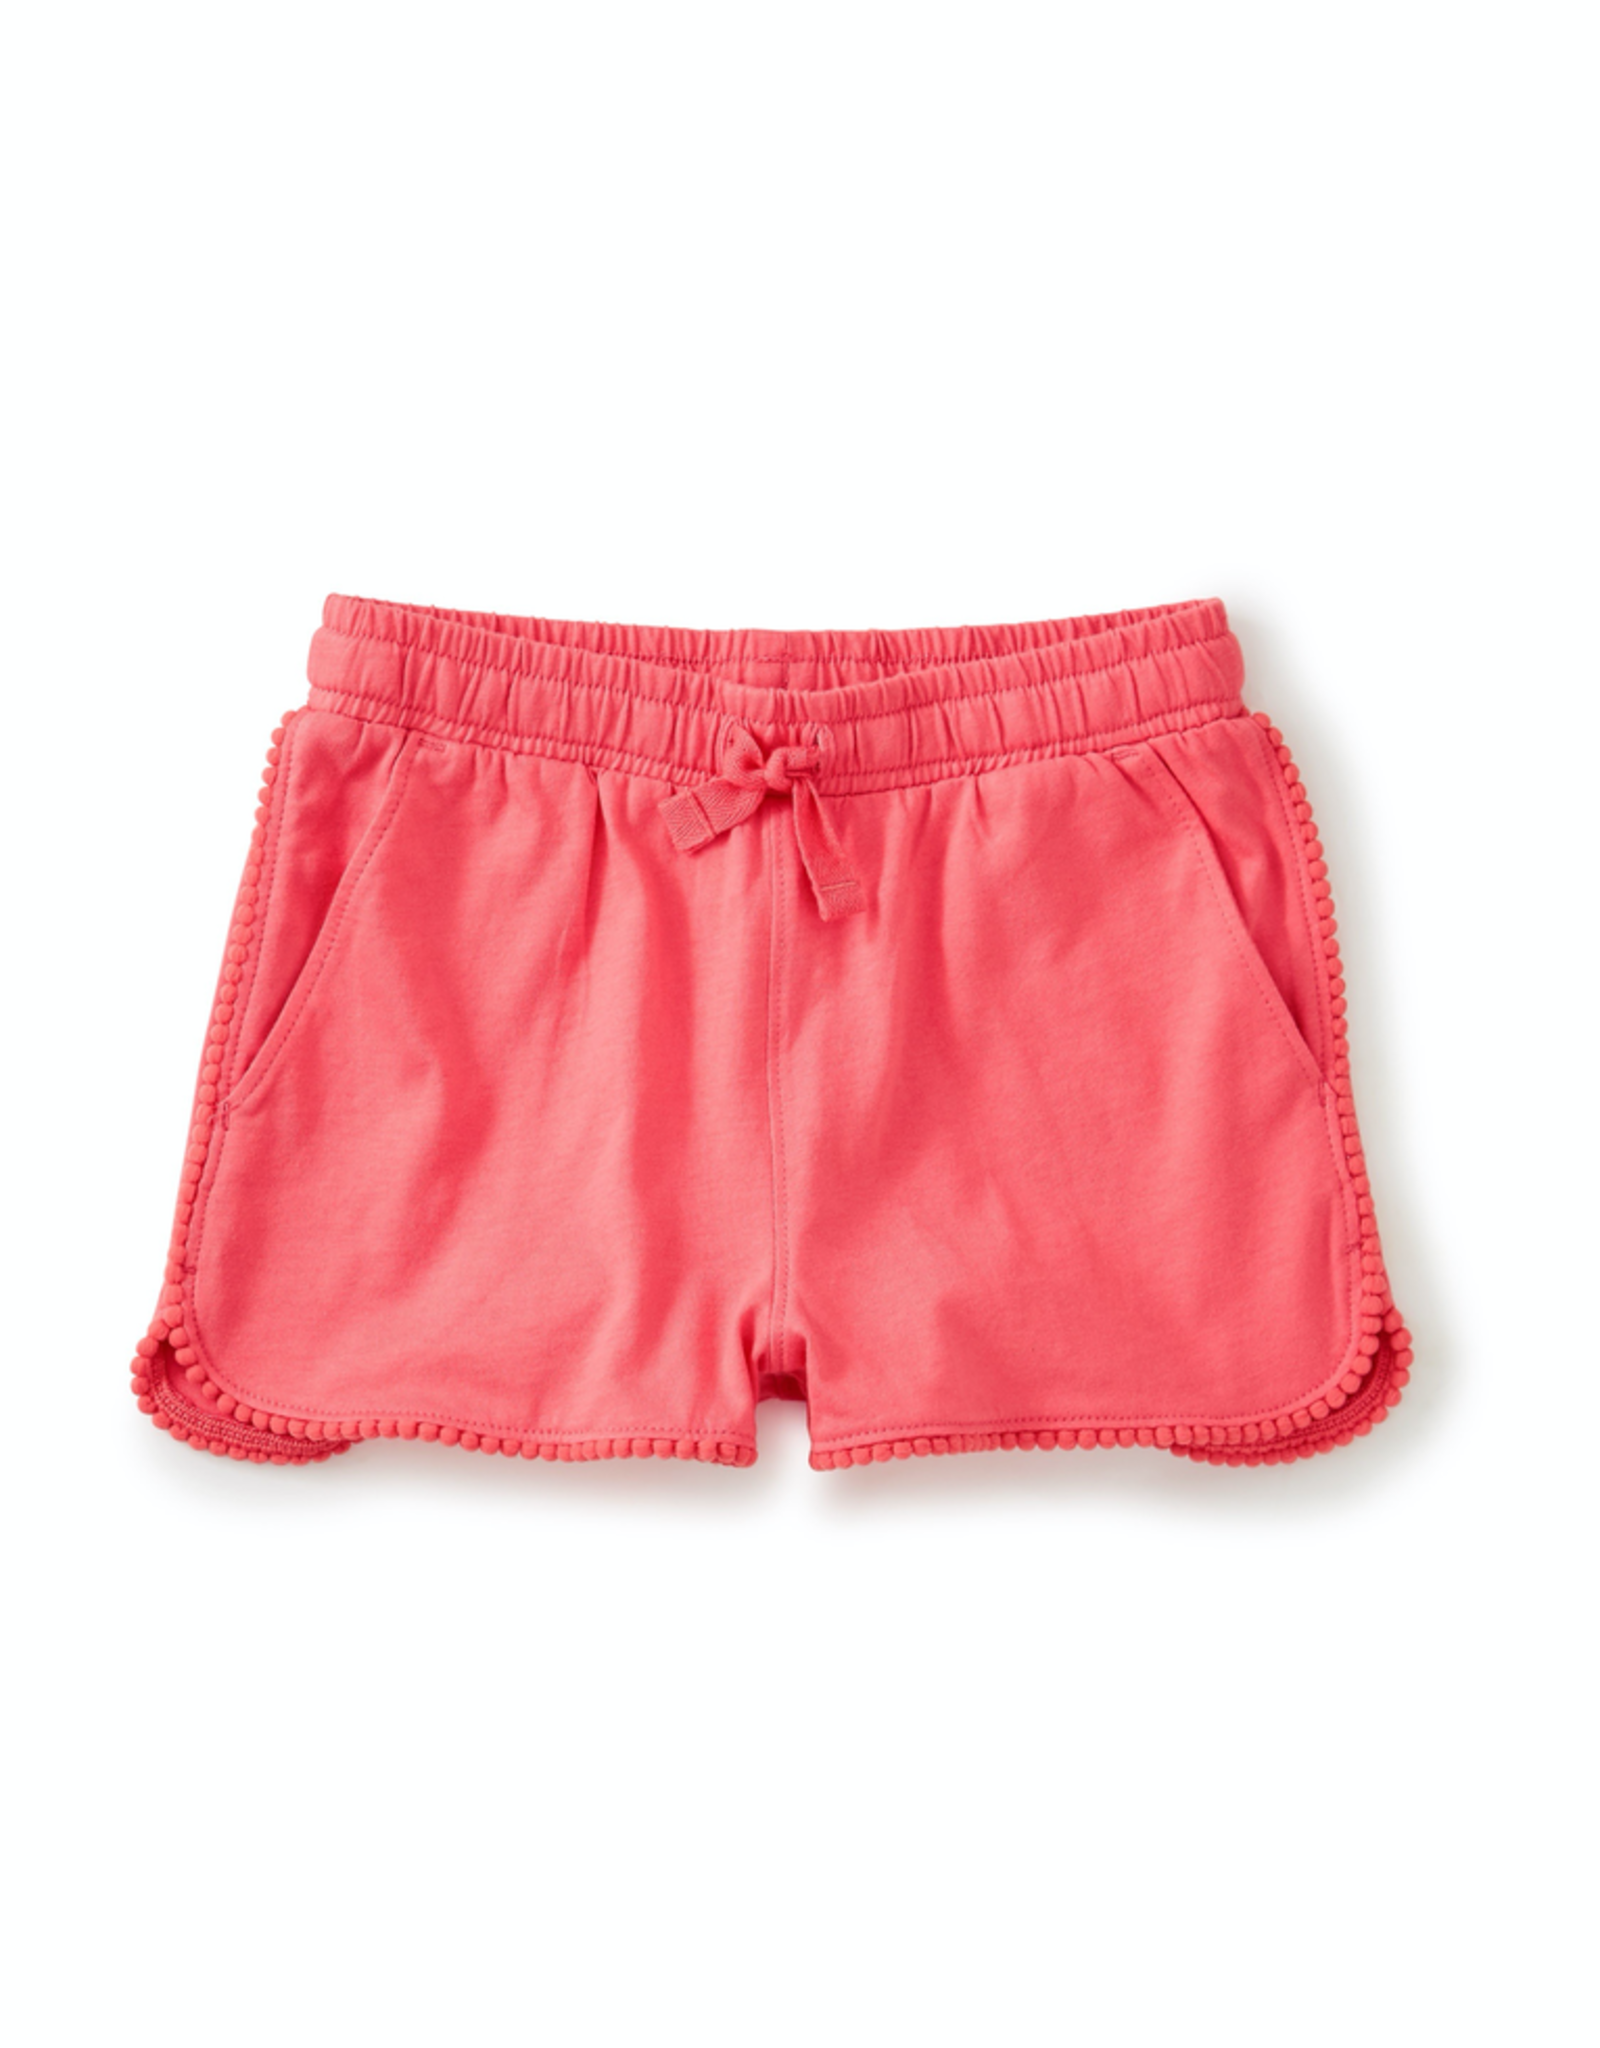 Tea Collection Pom Pom Trim Shorts for Girl in Flat Neon Rosa